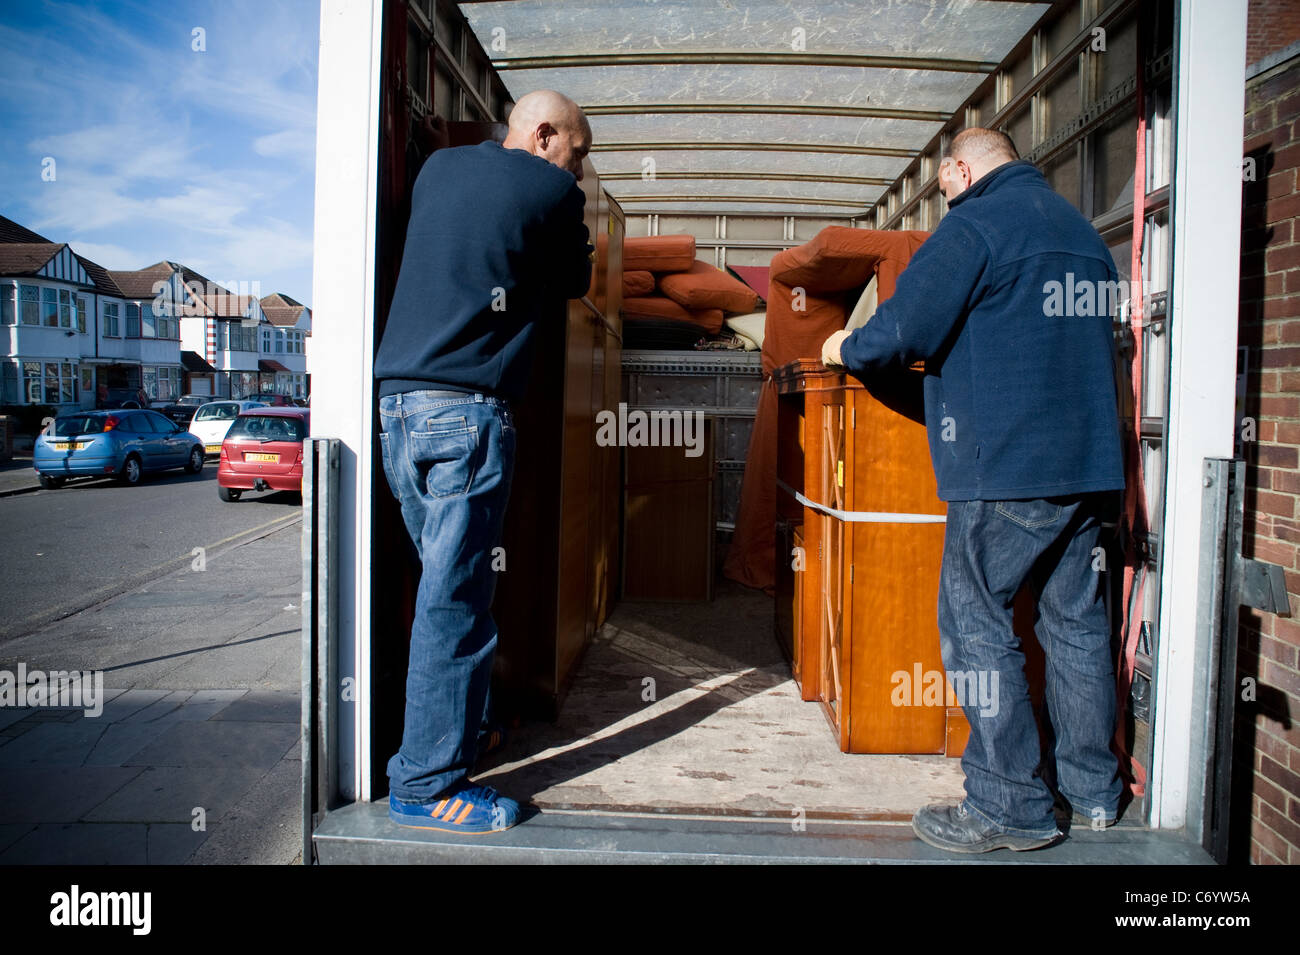 Furniture being delivered to St Luke's hospice charity shop in the London borough of Harrow - Stock Image